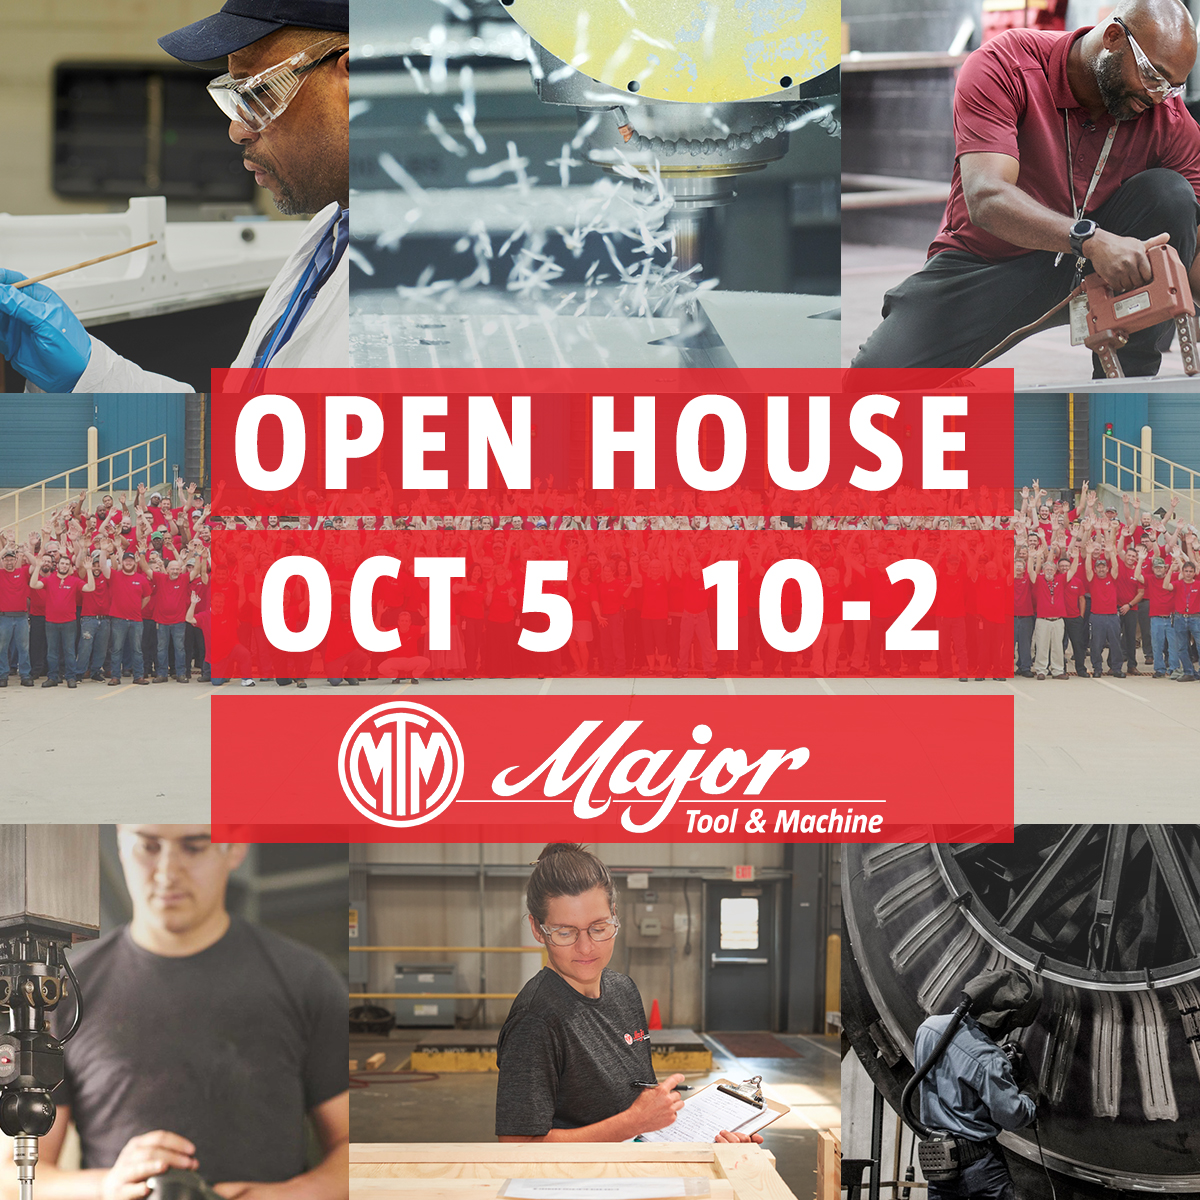 open house major tool machine